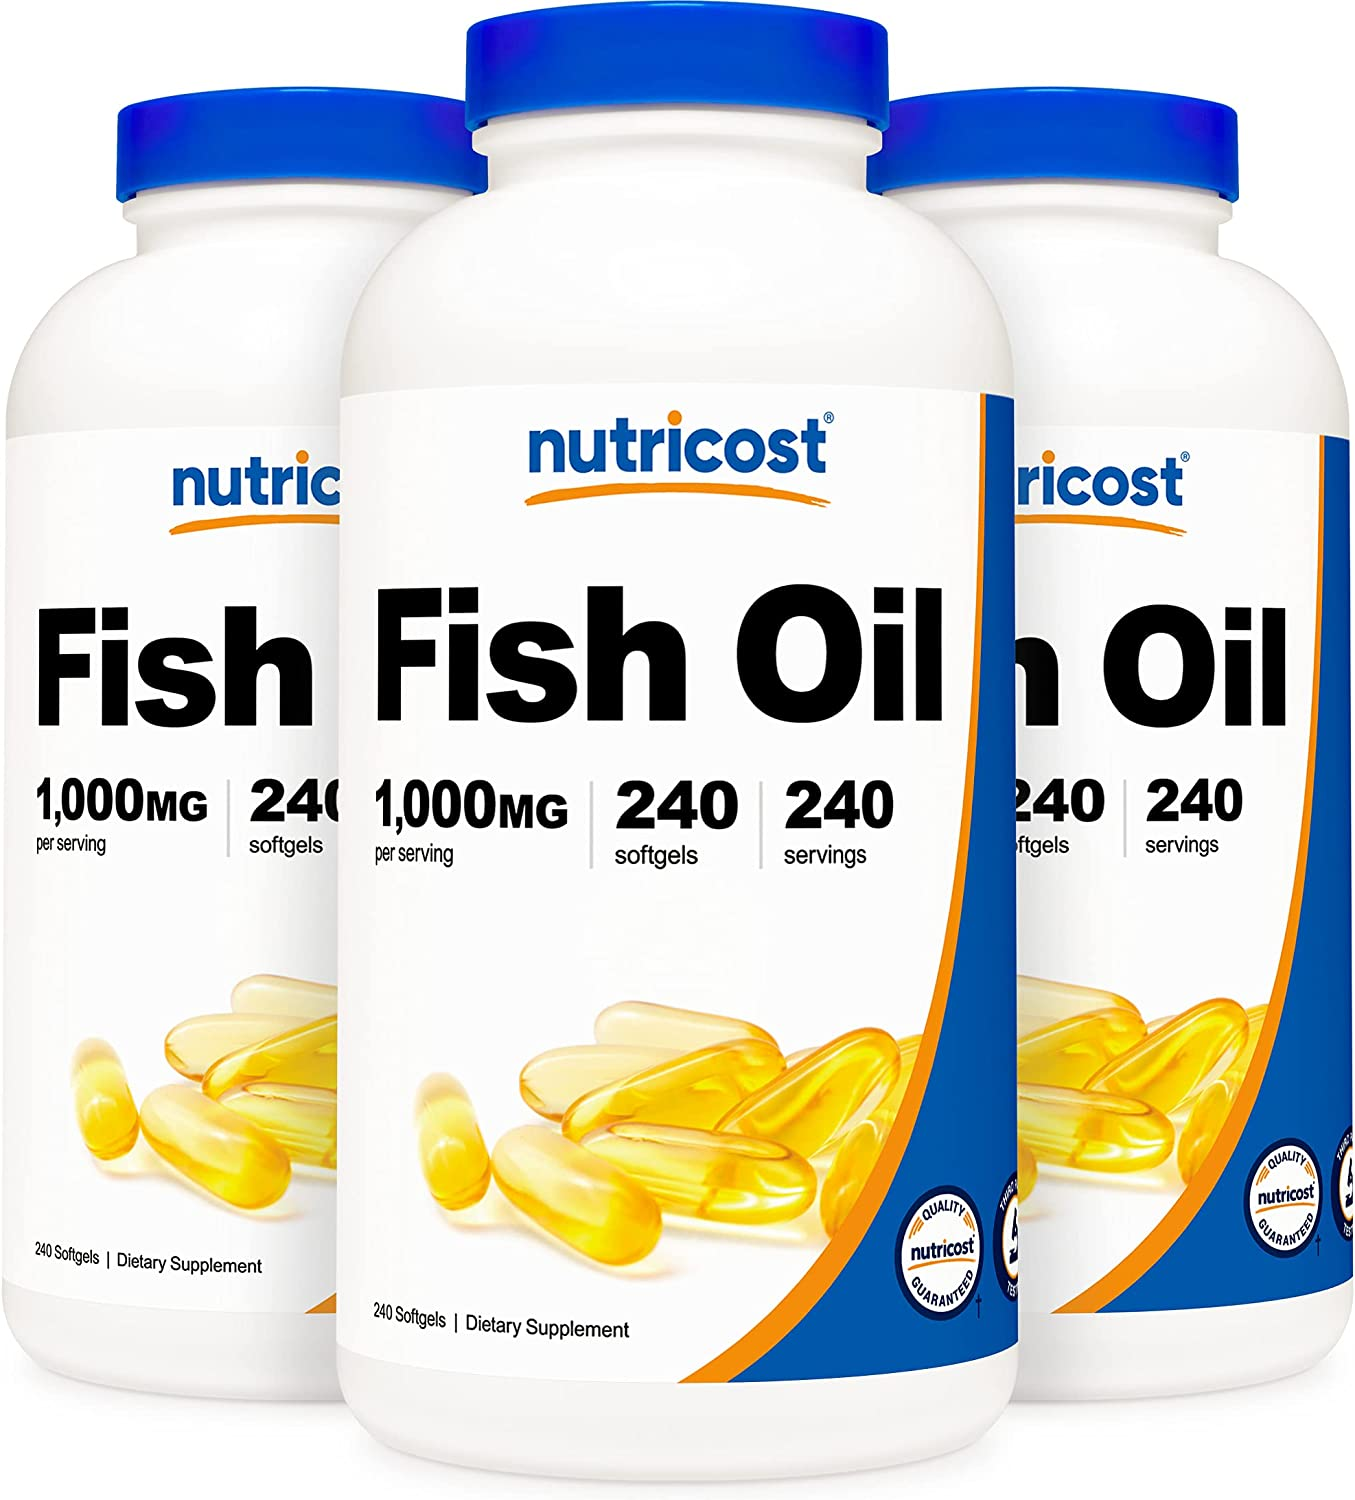 Nutricost Fish Oil 1000mg 600mg Save money New sales of Softgels 240 3 Bo Omega-3